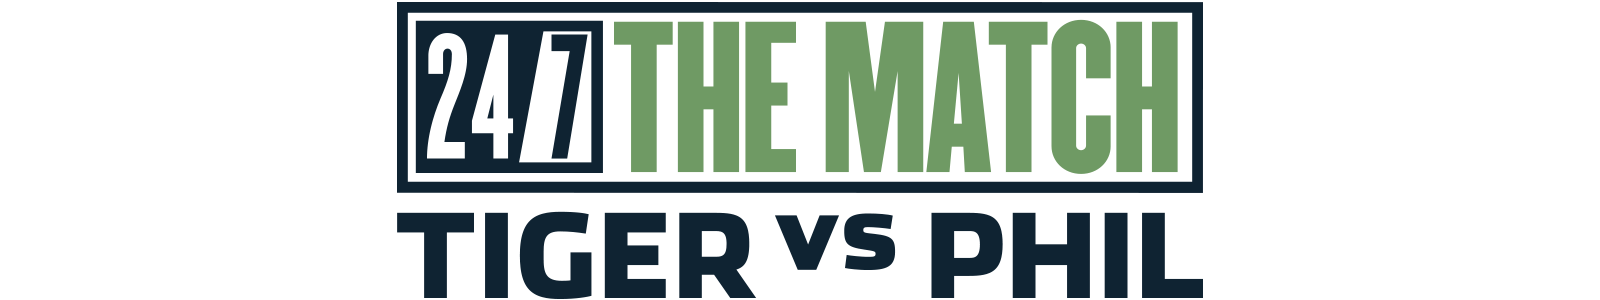 24-7-the-match-tiger-vs-phil-logo